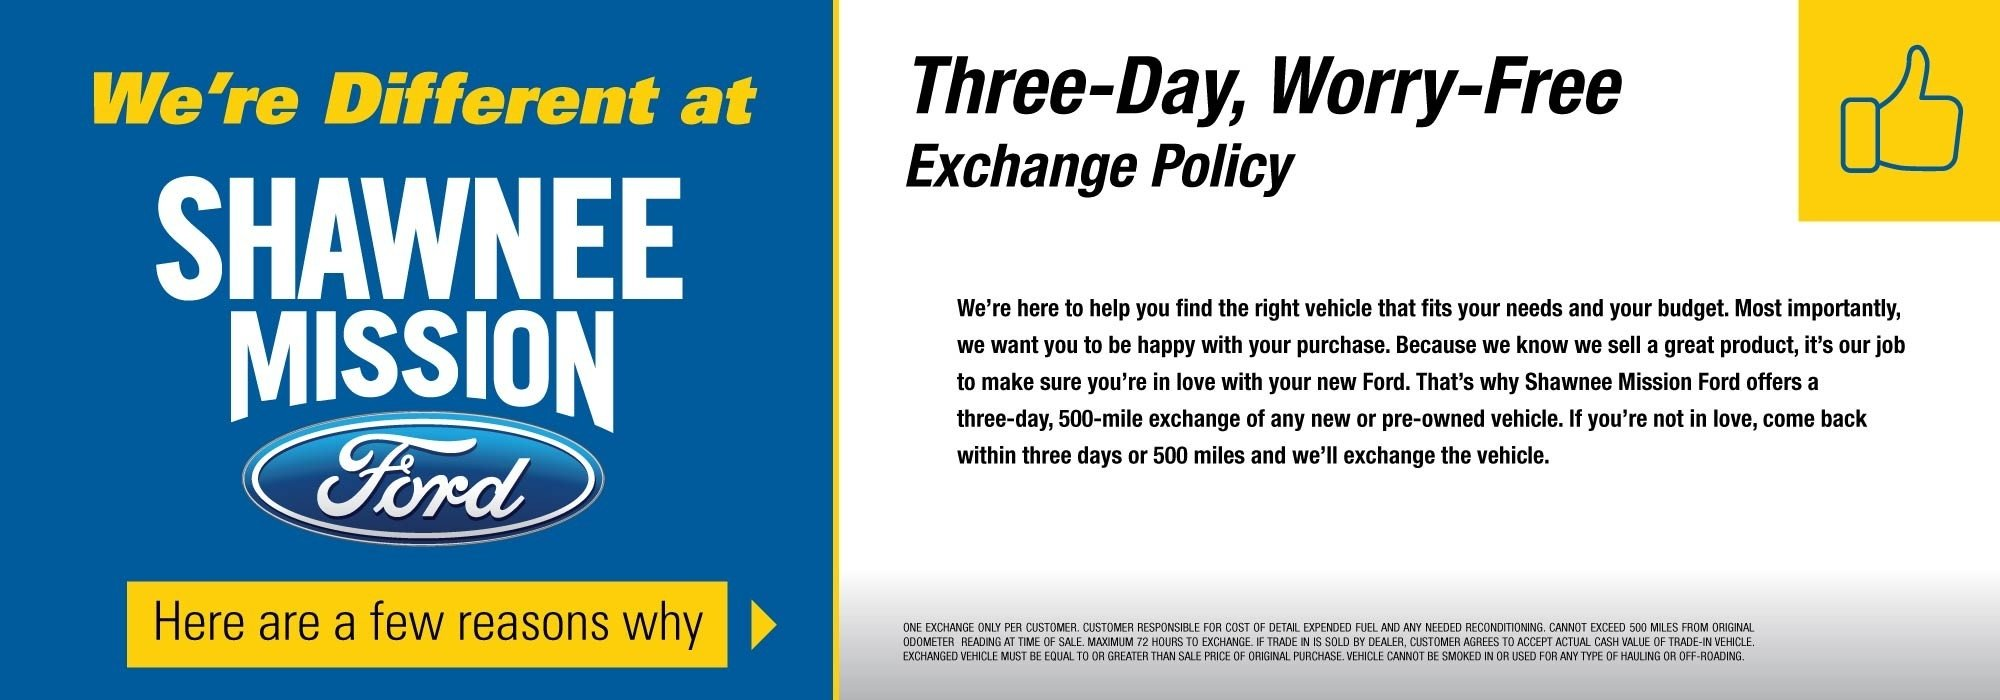 Shawnee Mission Ford Three-Day Exchange Policy